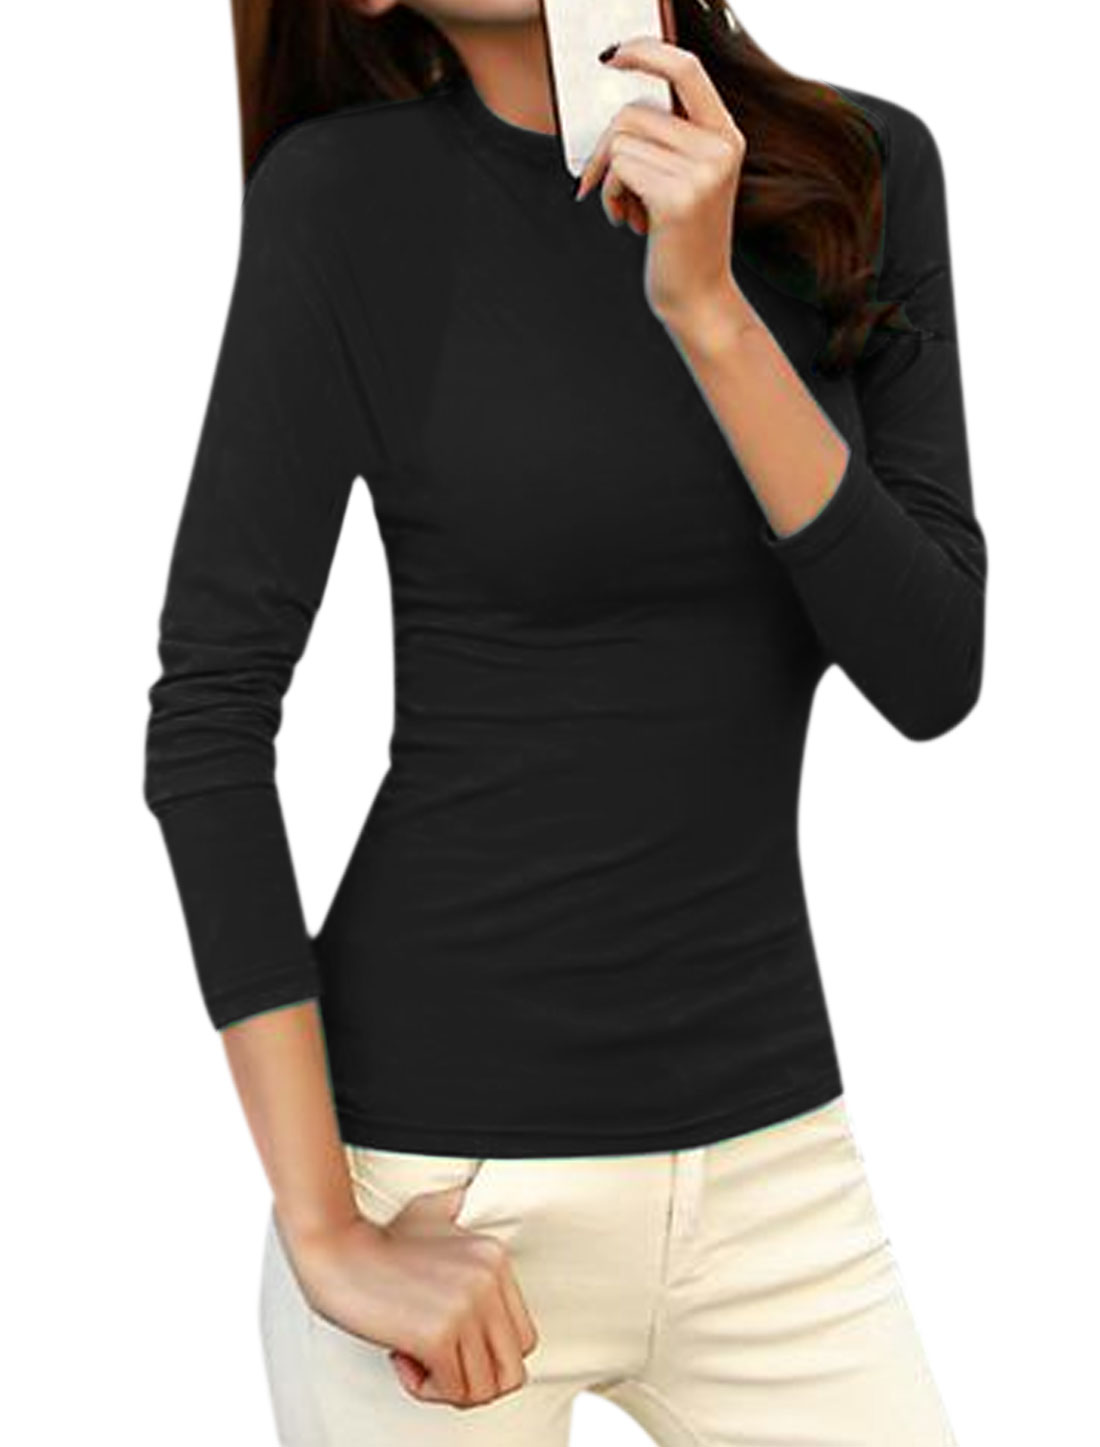 Women Crew Neck Long Sleeves Slim Fit Tee Shirt Black M